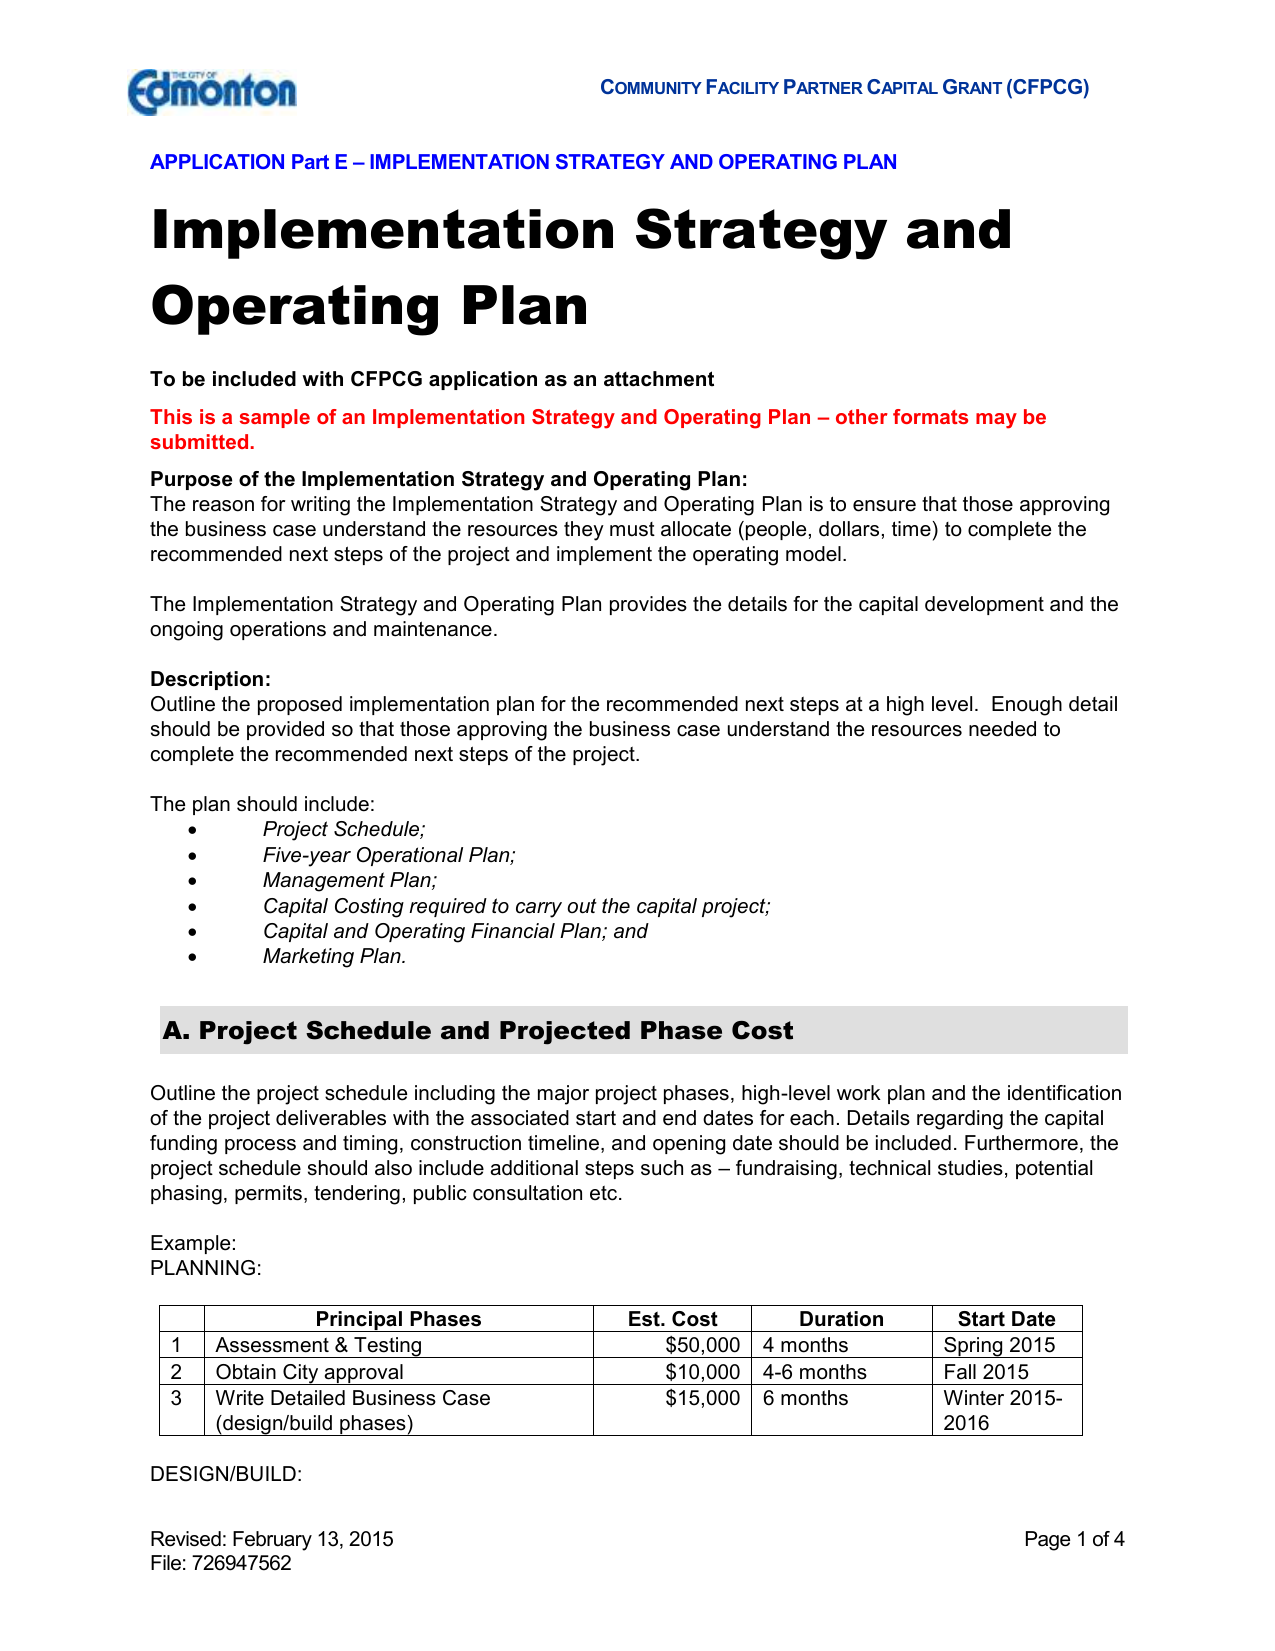 Implementation Strategy And Operating Plan